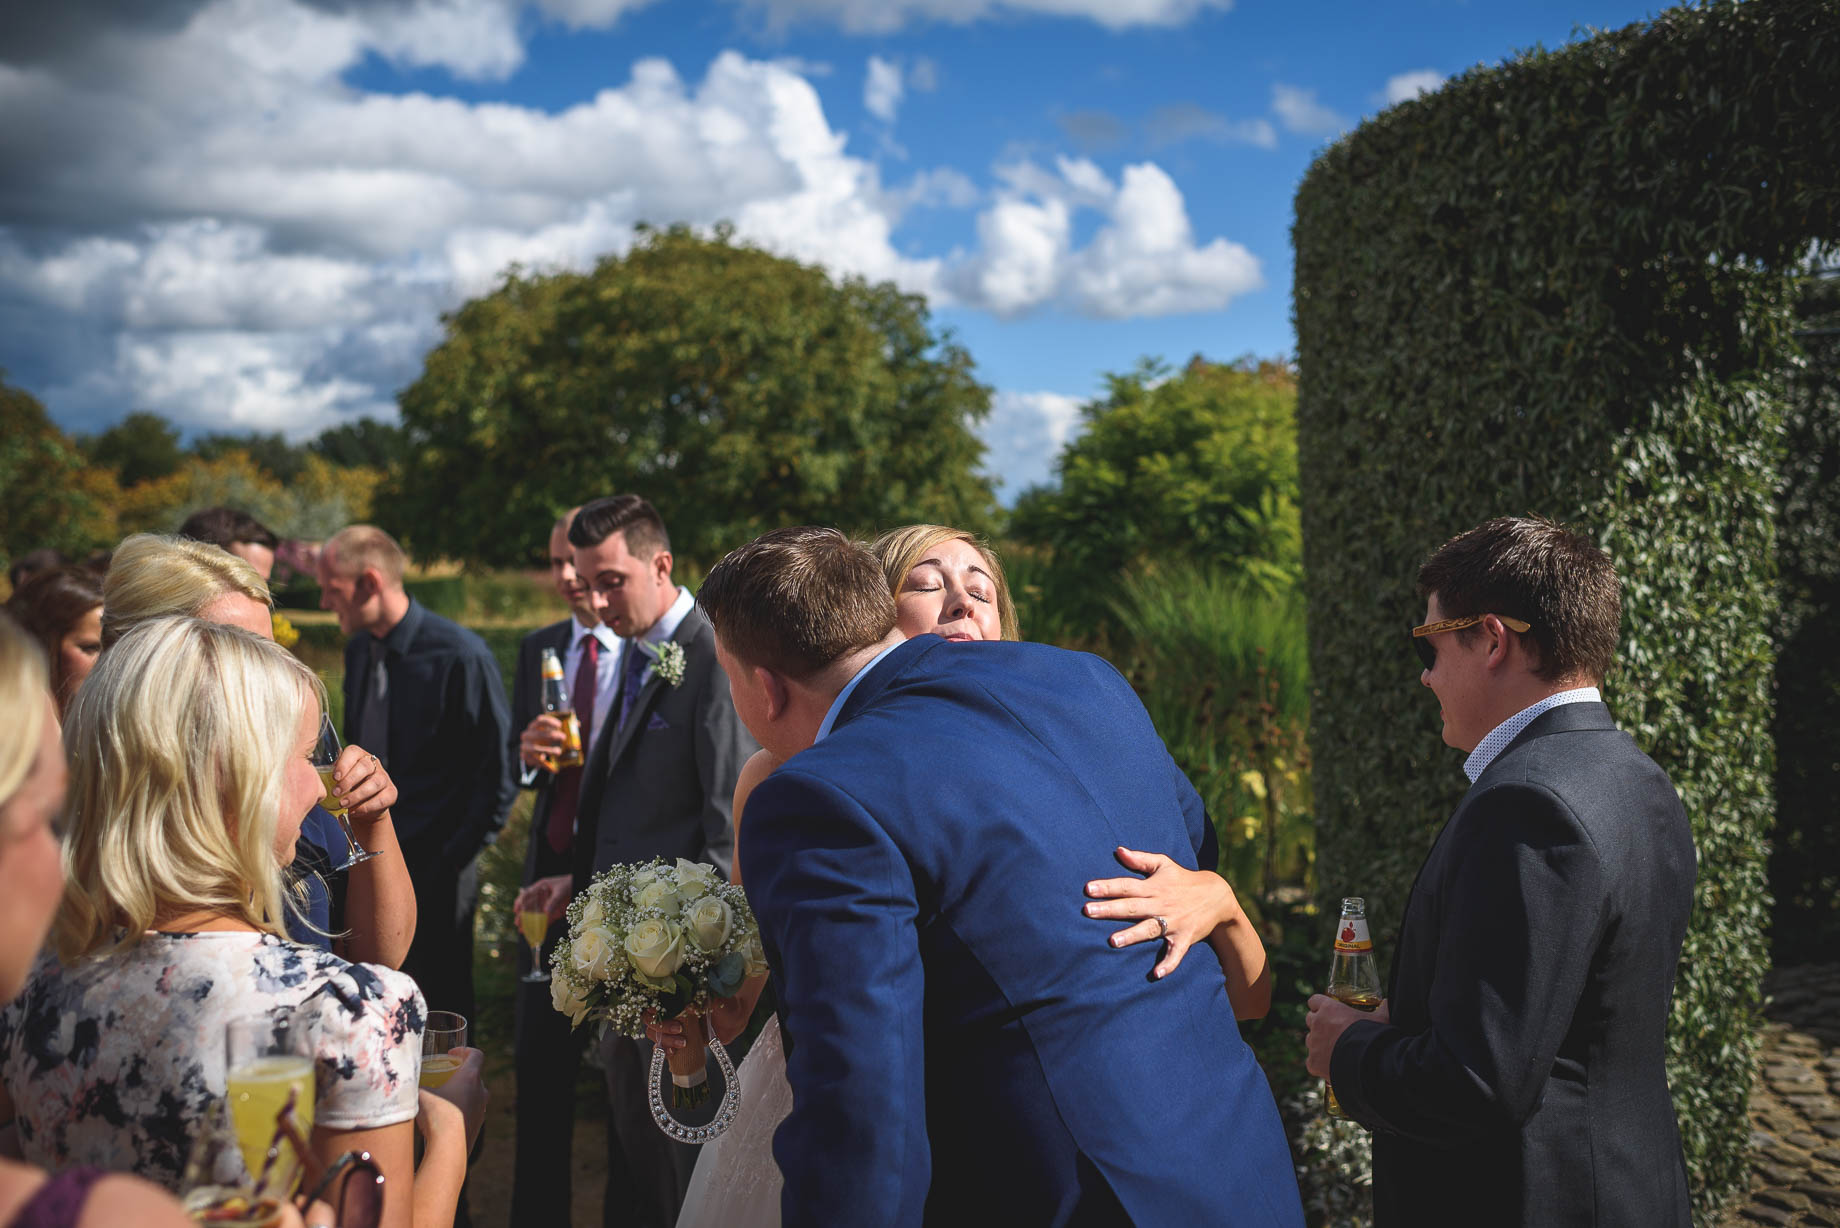 Bury Court Barn wedding photography - Guy Collier - Kirsty and Lewis (76 of 150)